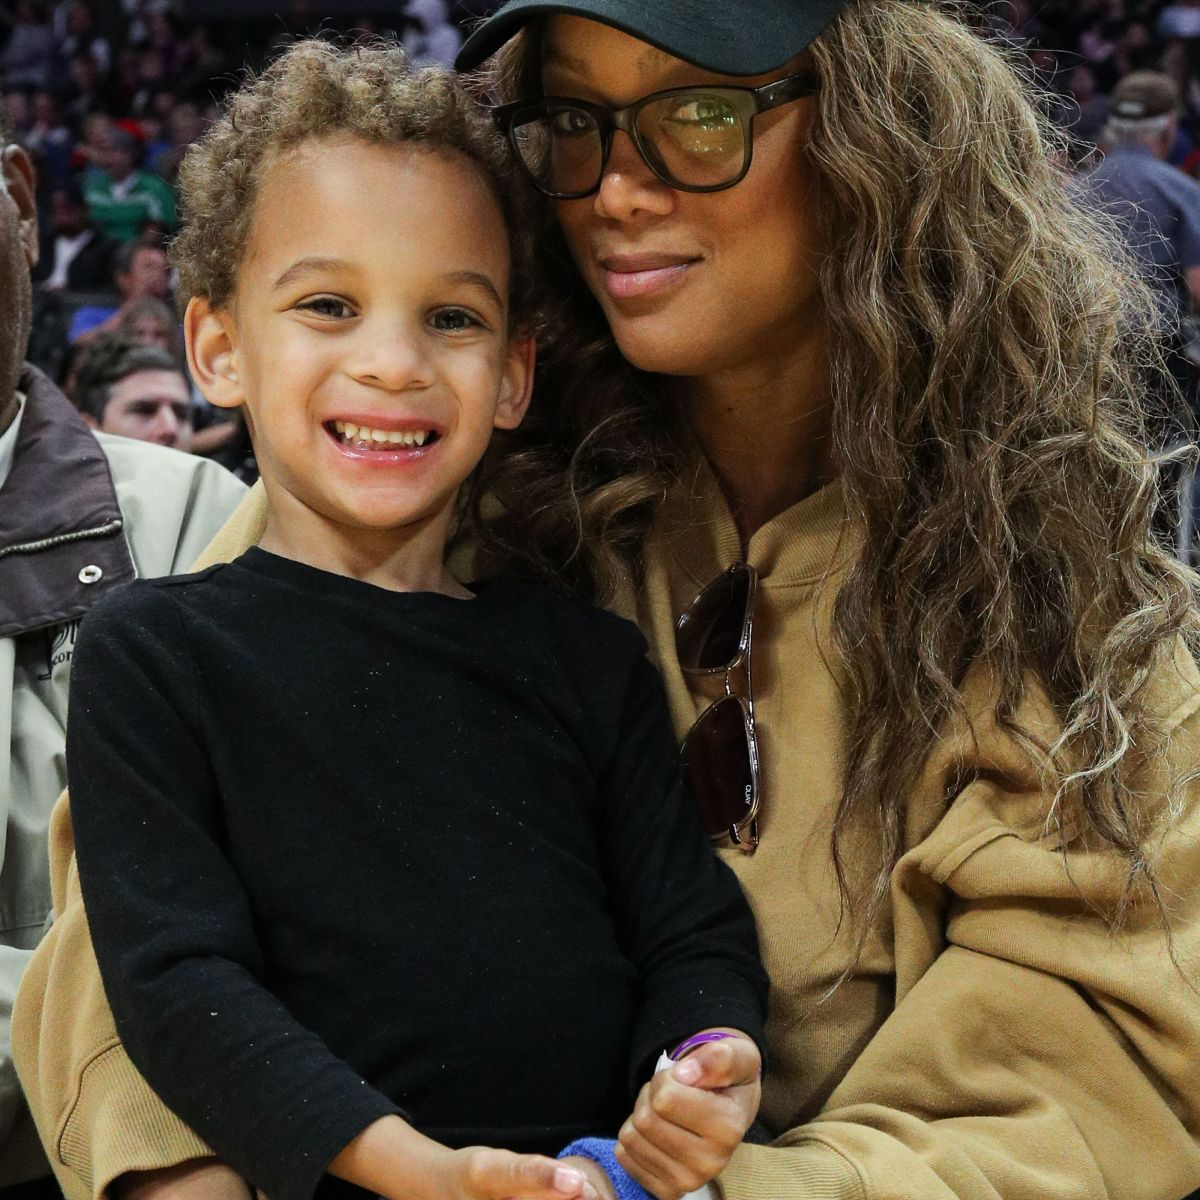 TYRA BANKS SON GETS BORED WATCHING DANCING WITH THE STARS